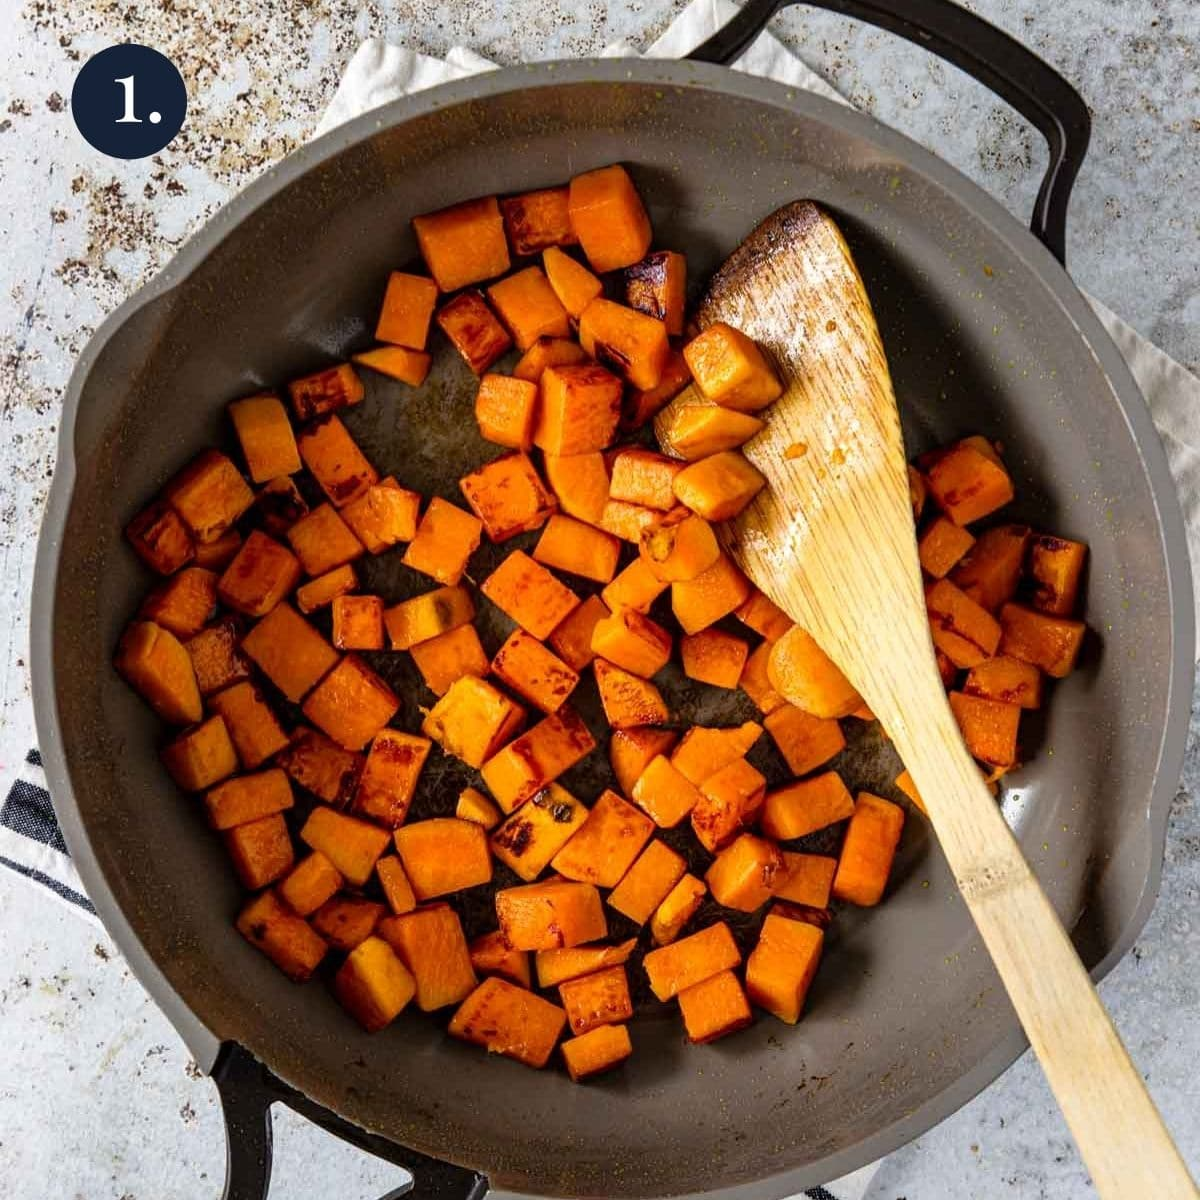 cubed sweet potatoes in a skillet